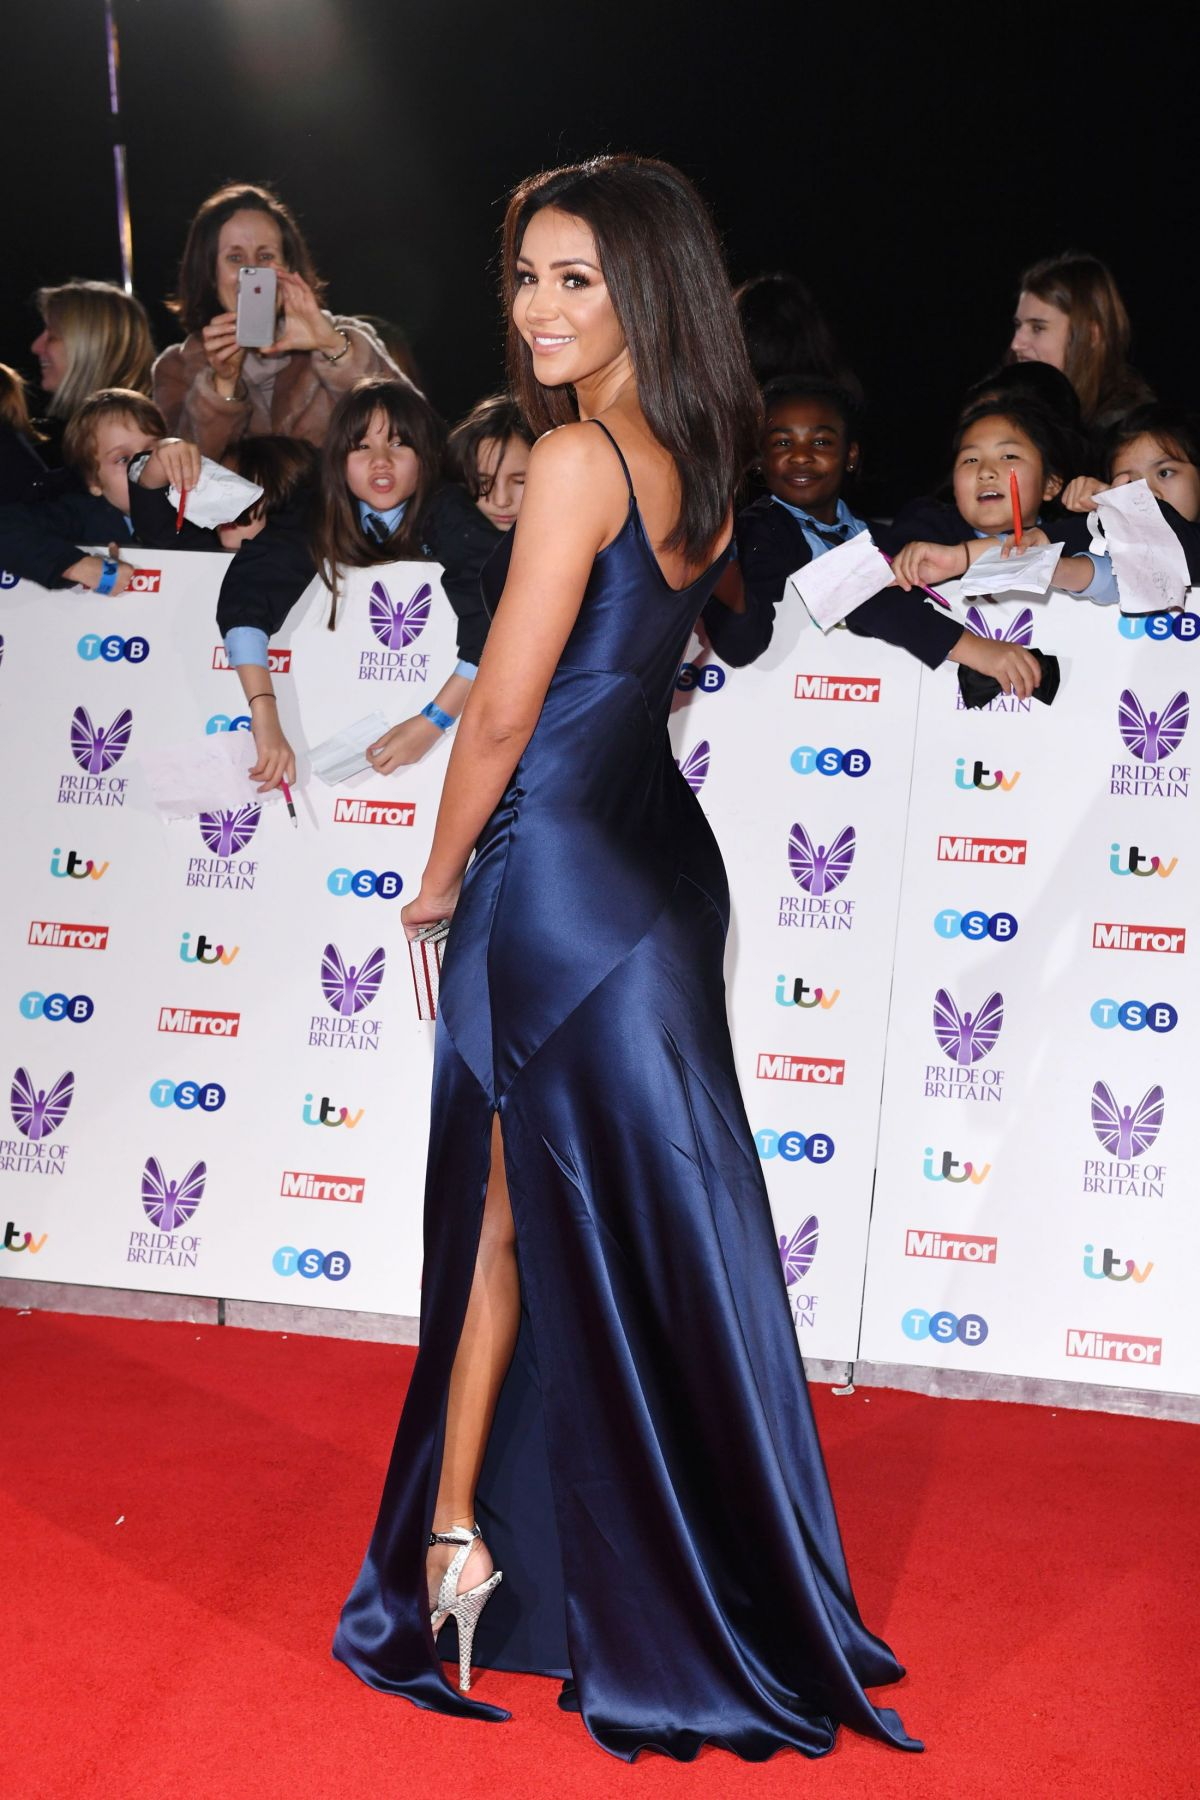 MICHELLE KEEGAN at Pride of Britain Awards 2016 in London 10/31/2016